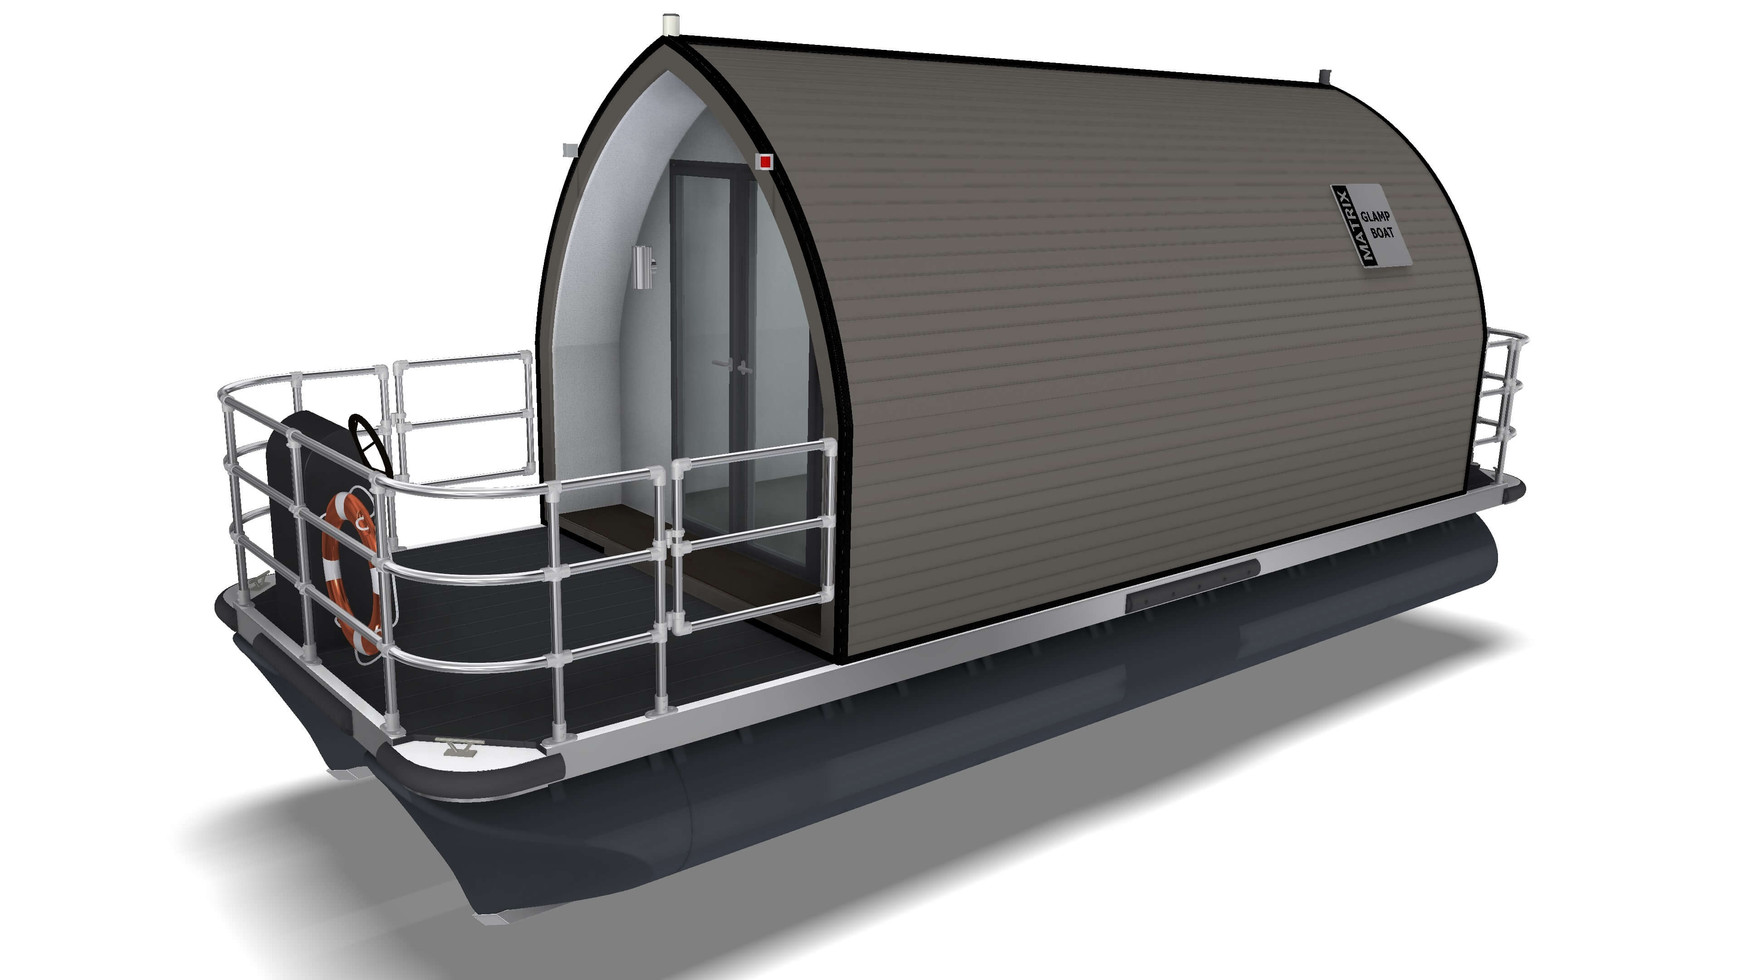 Design of a glamping pod